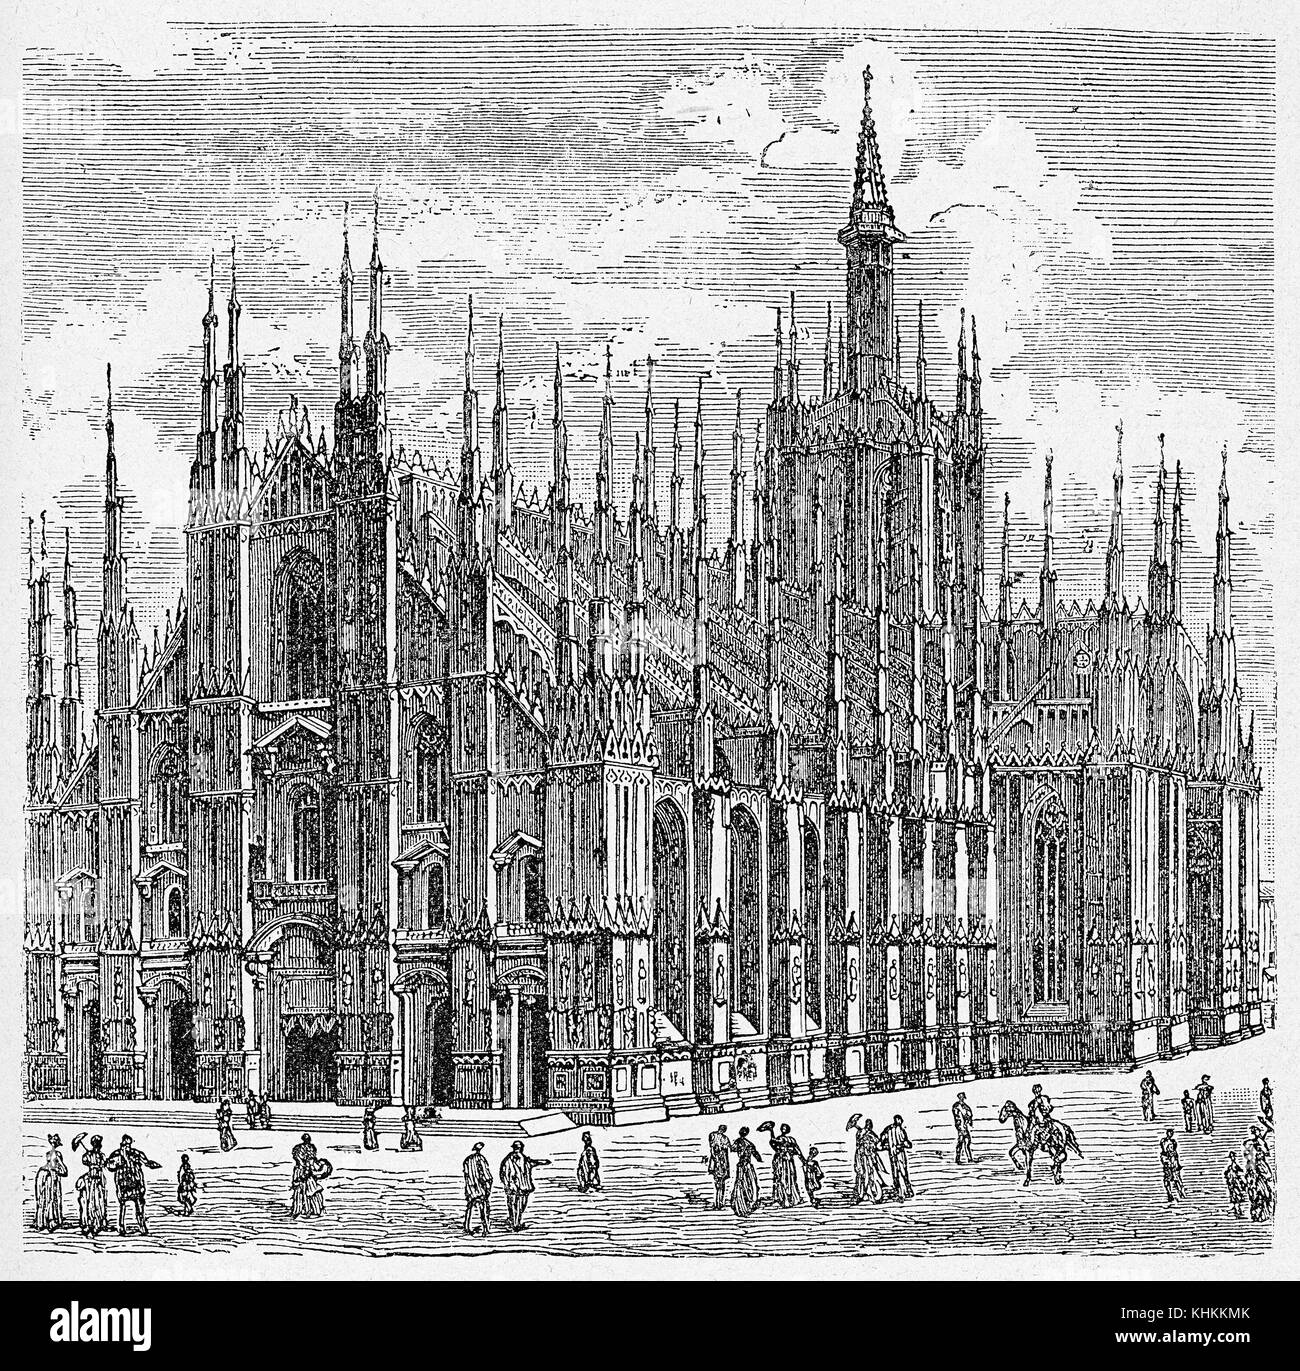 Milan cathedral in Gothic style, immense Renaissance building, third largest church in the world. The basilica construction - Stock Image